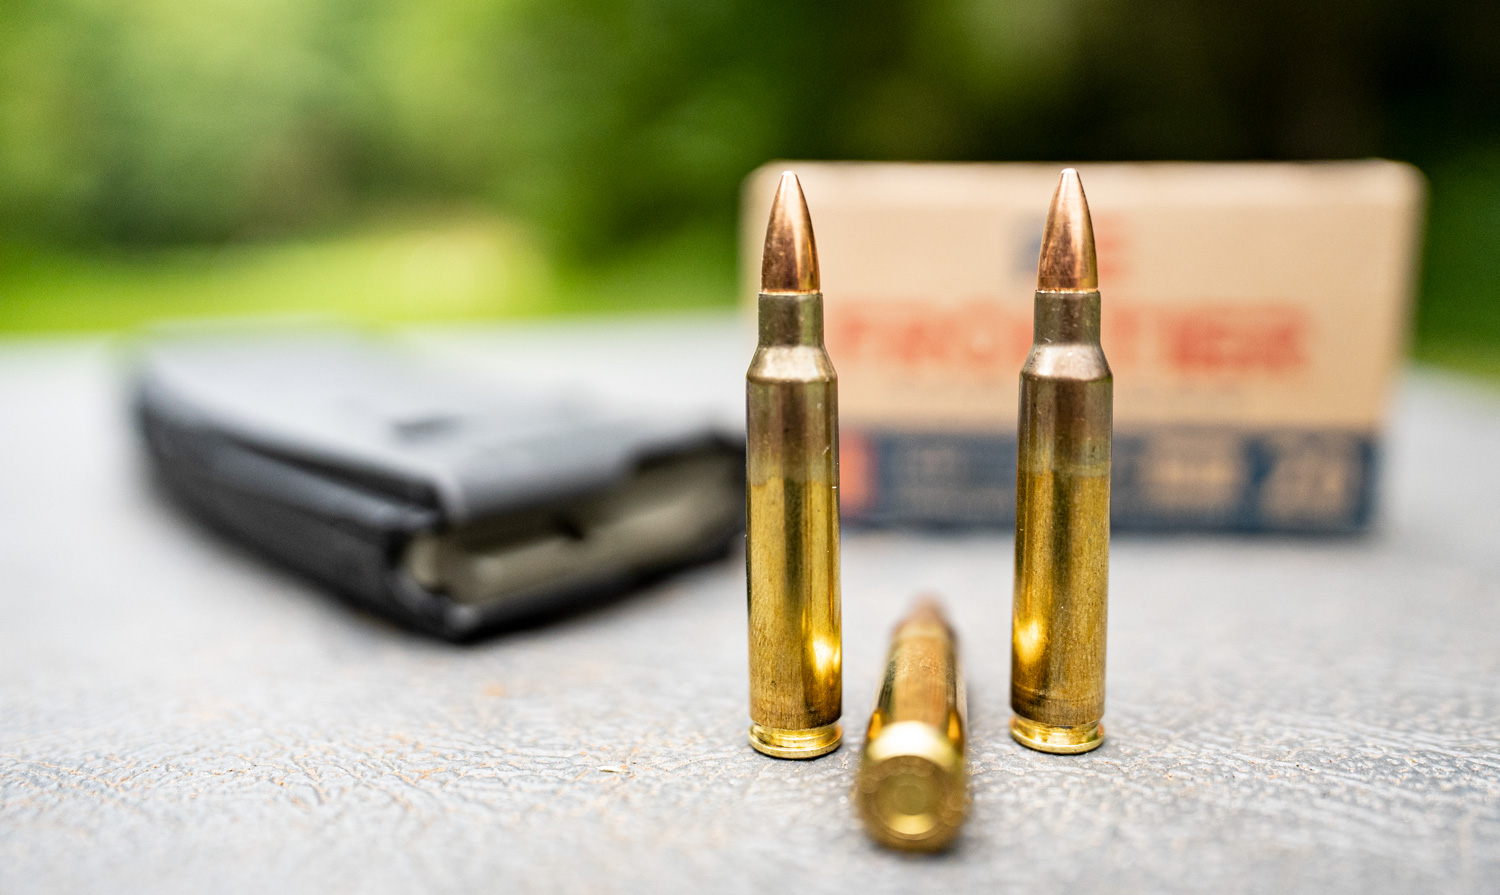 Brass cased ammo on a shooting bench